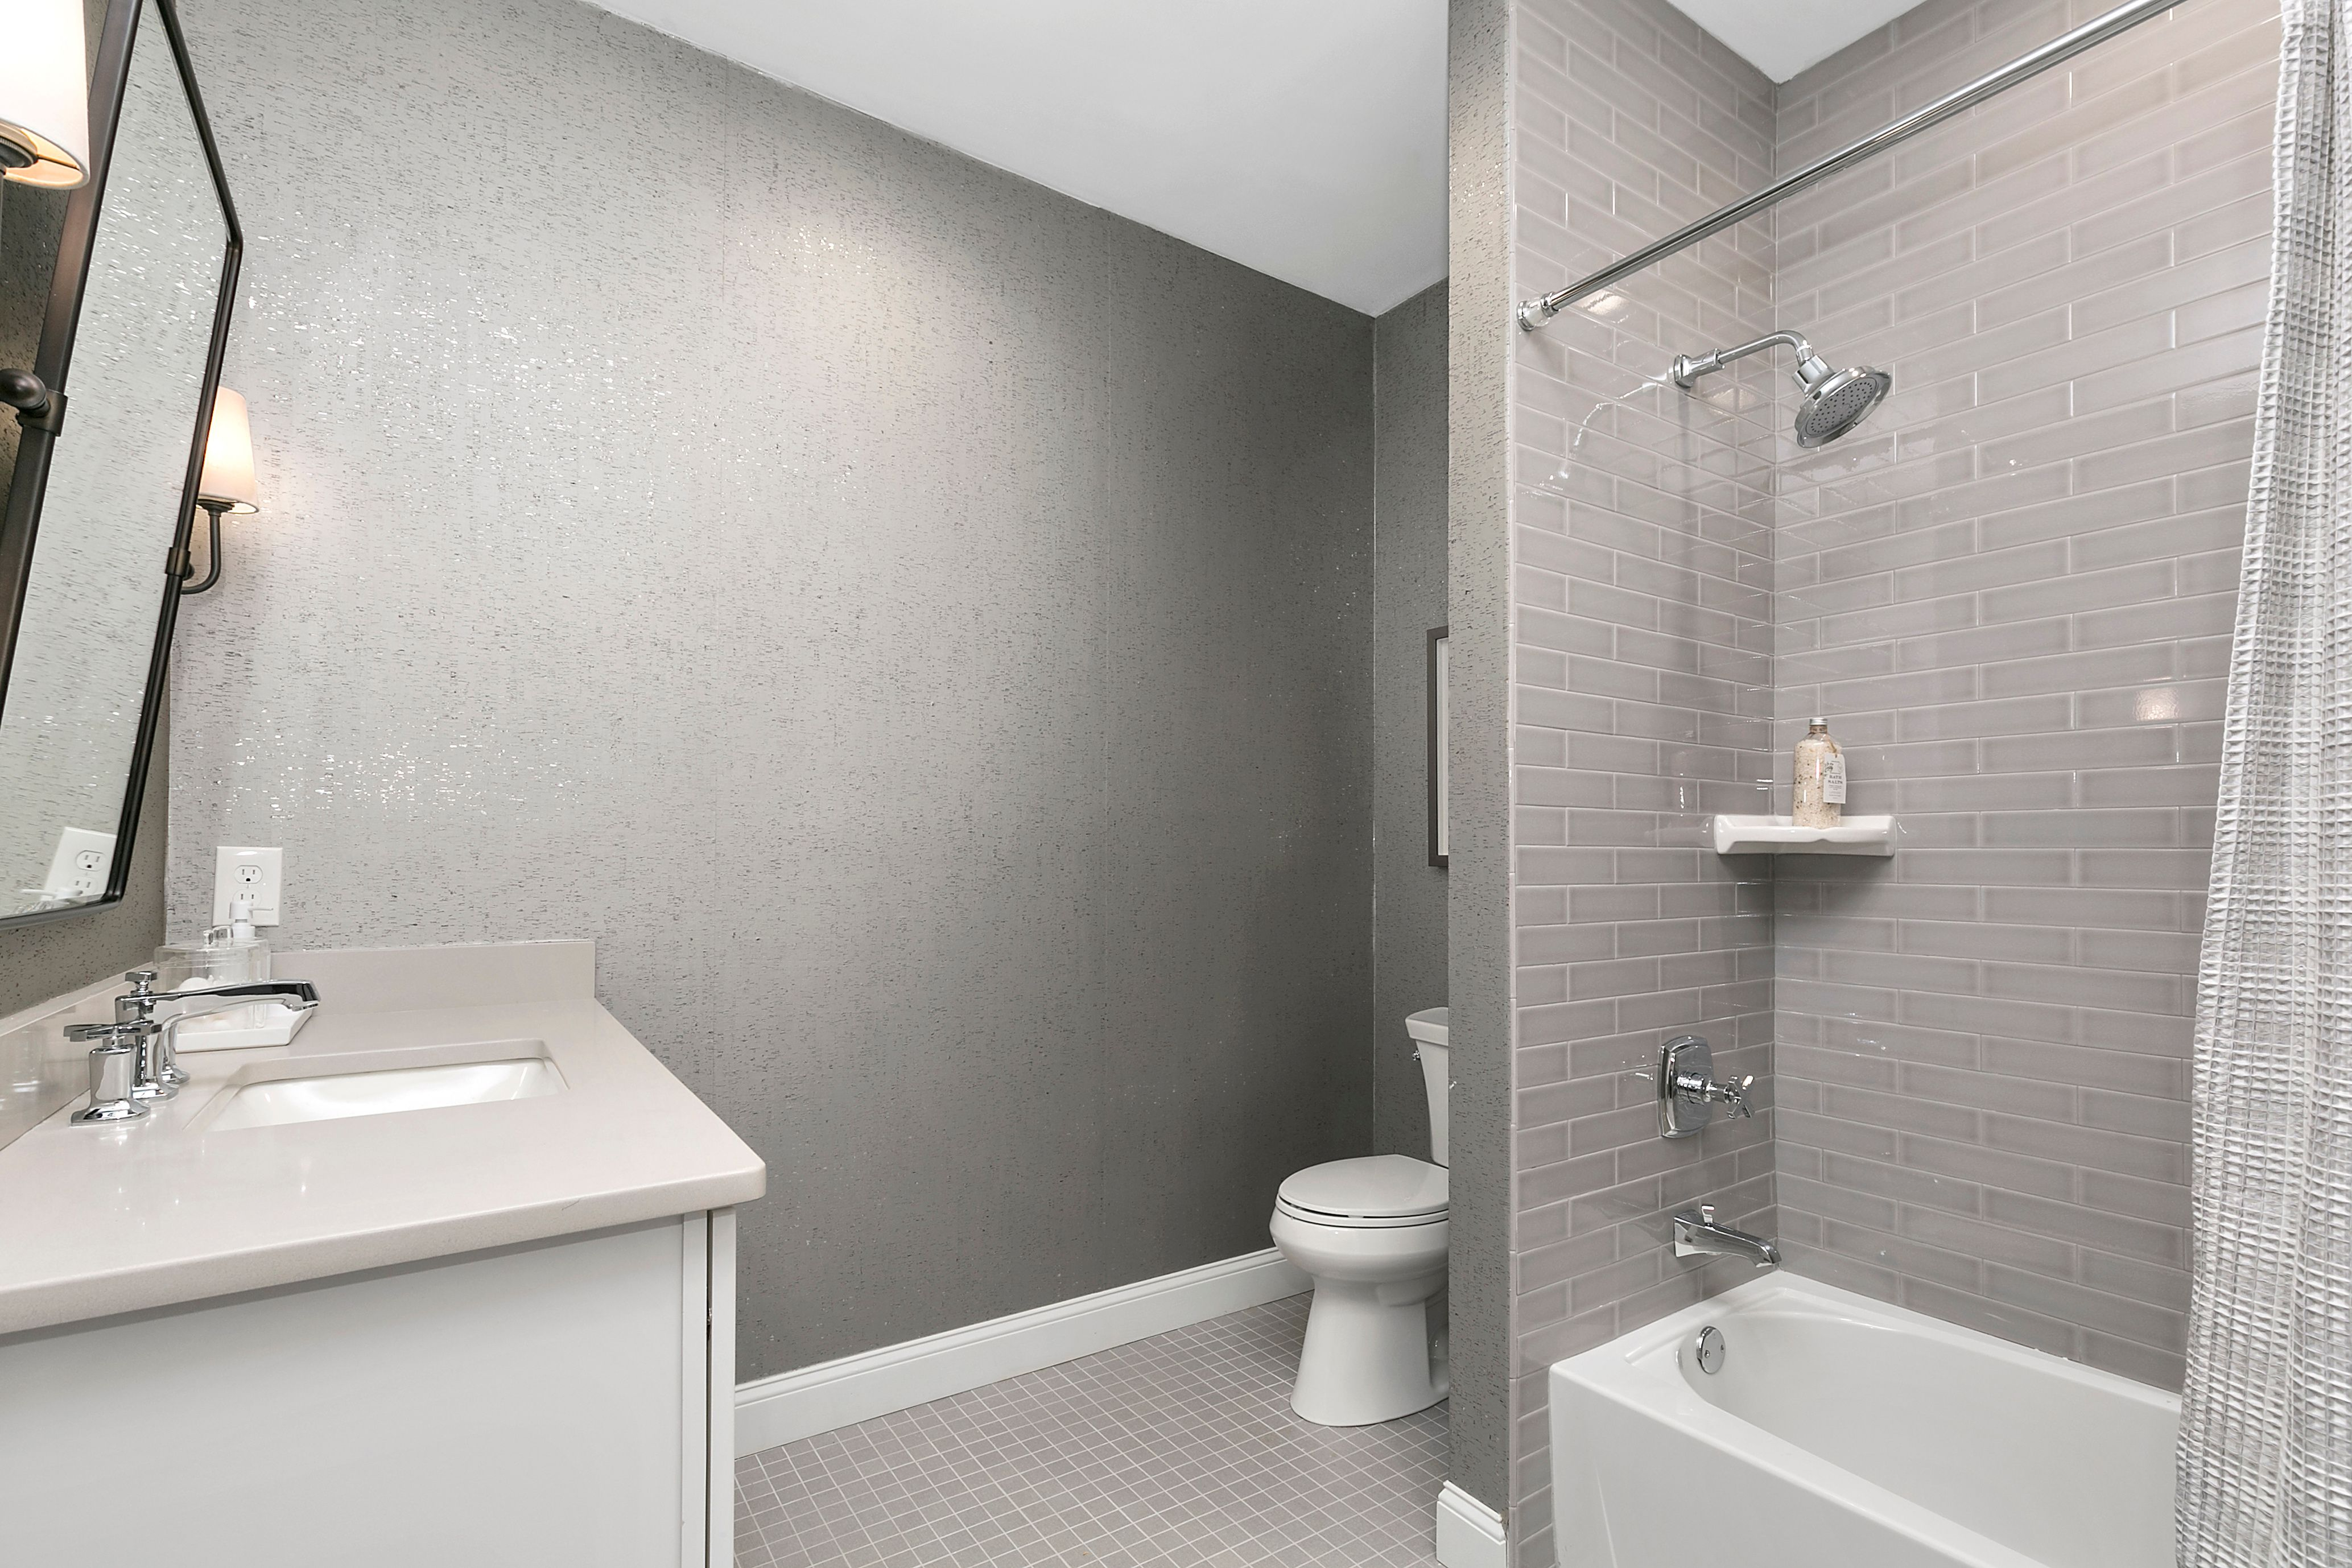 Bathroom featured in The Fairlawn By Beechwood Homes in Nassau-Suffolk, NY